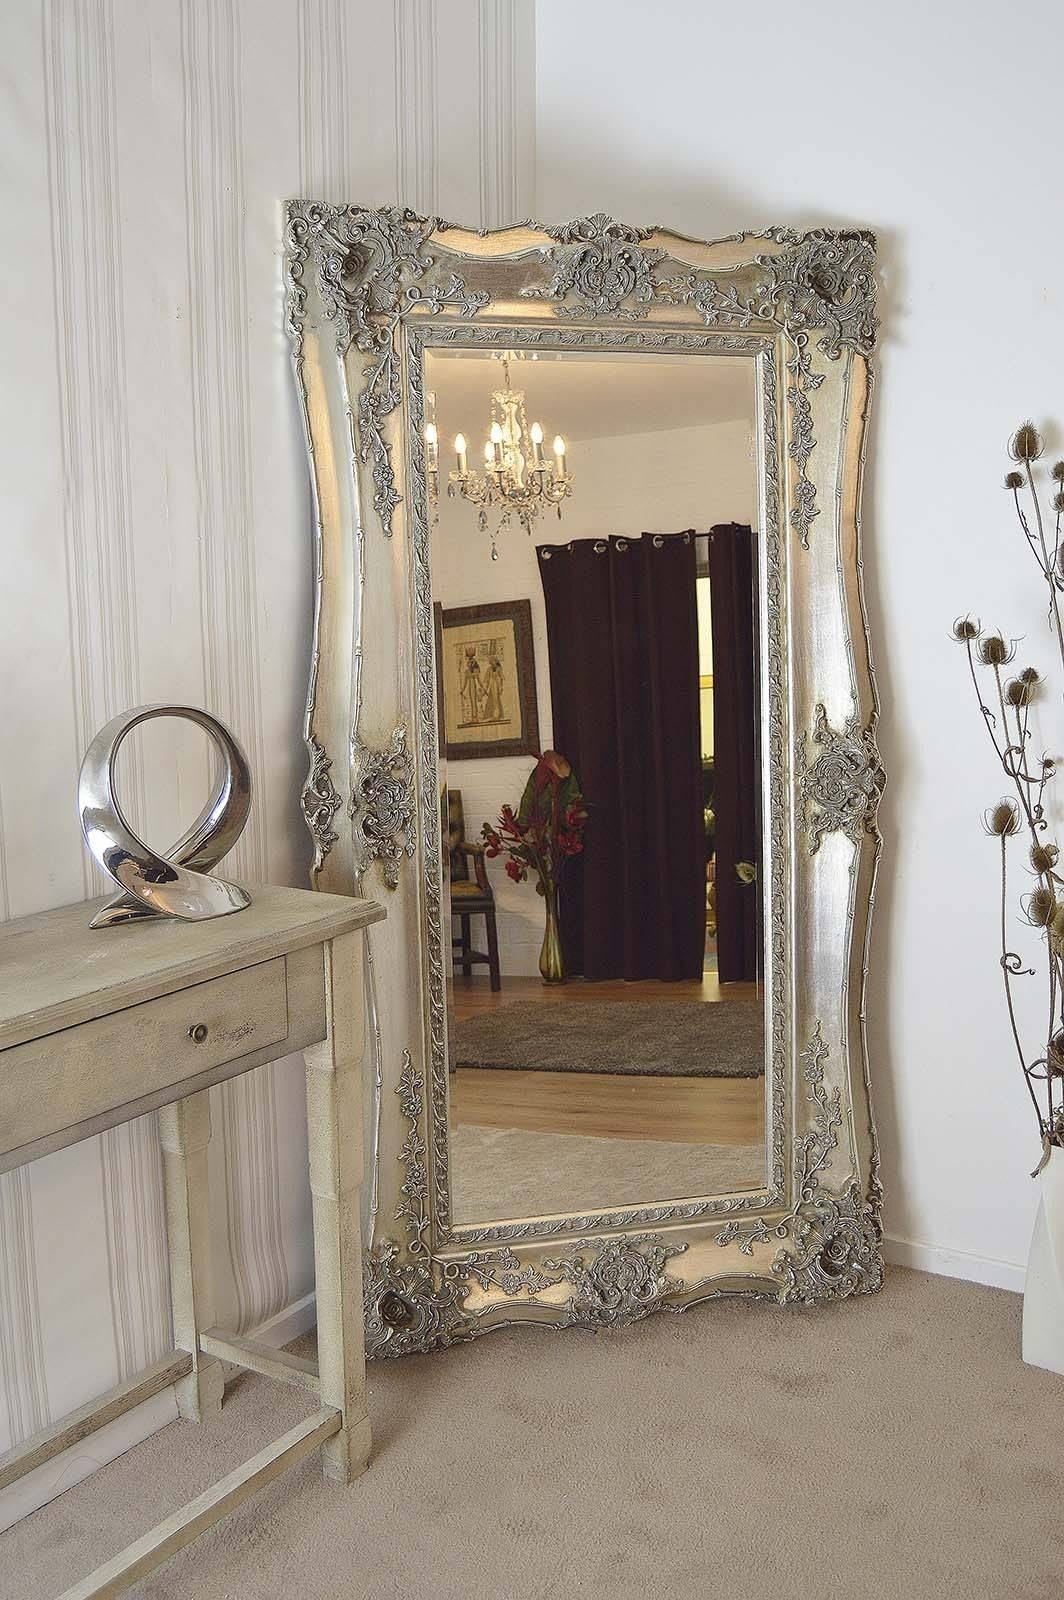 Large Antique Wall Mirror Ornate Frame Antique Ornate Wall Mirrors with Vintage Large Mirrors (Image 4 of 15)